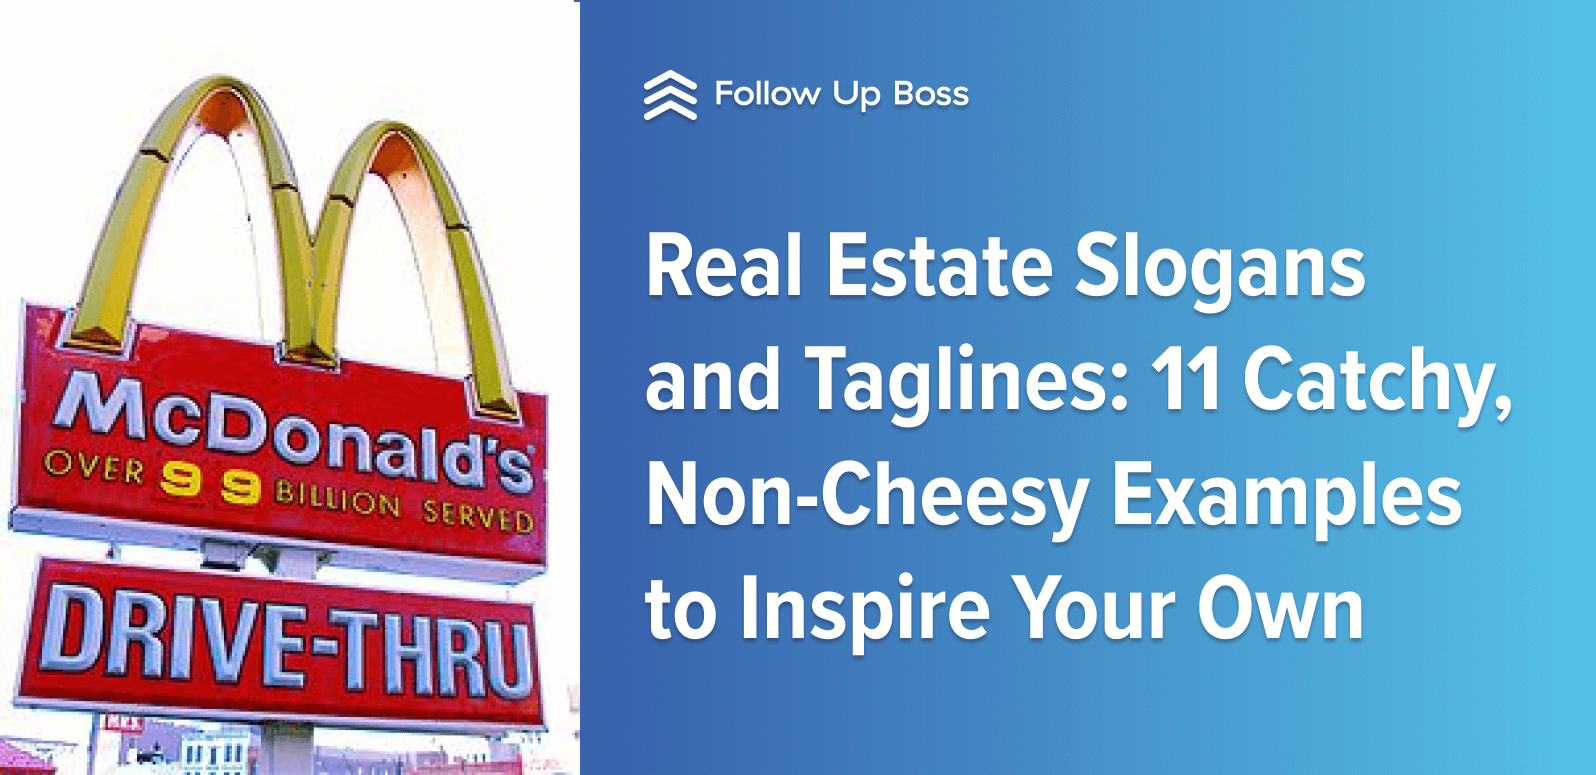 Real Estate Slogans and Taglines: 11 Catchy, Non-Cheesy